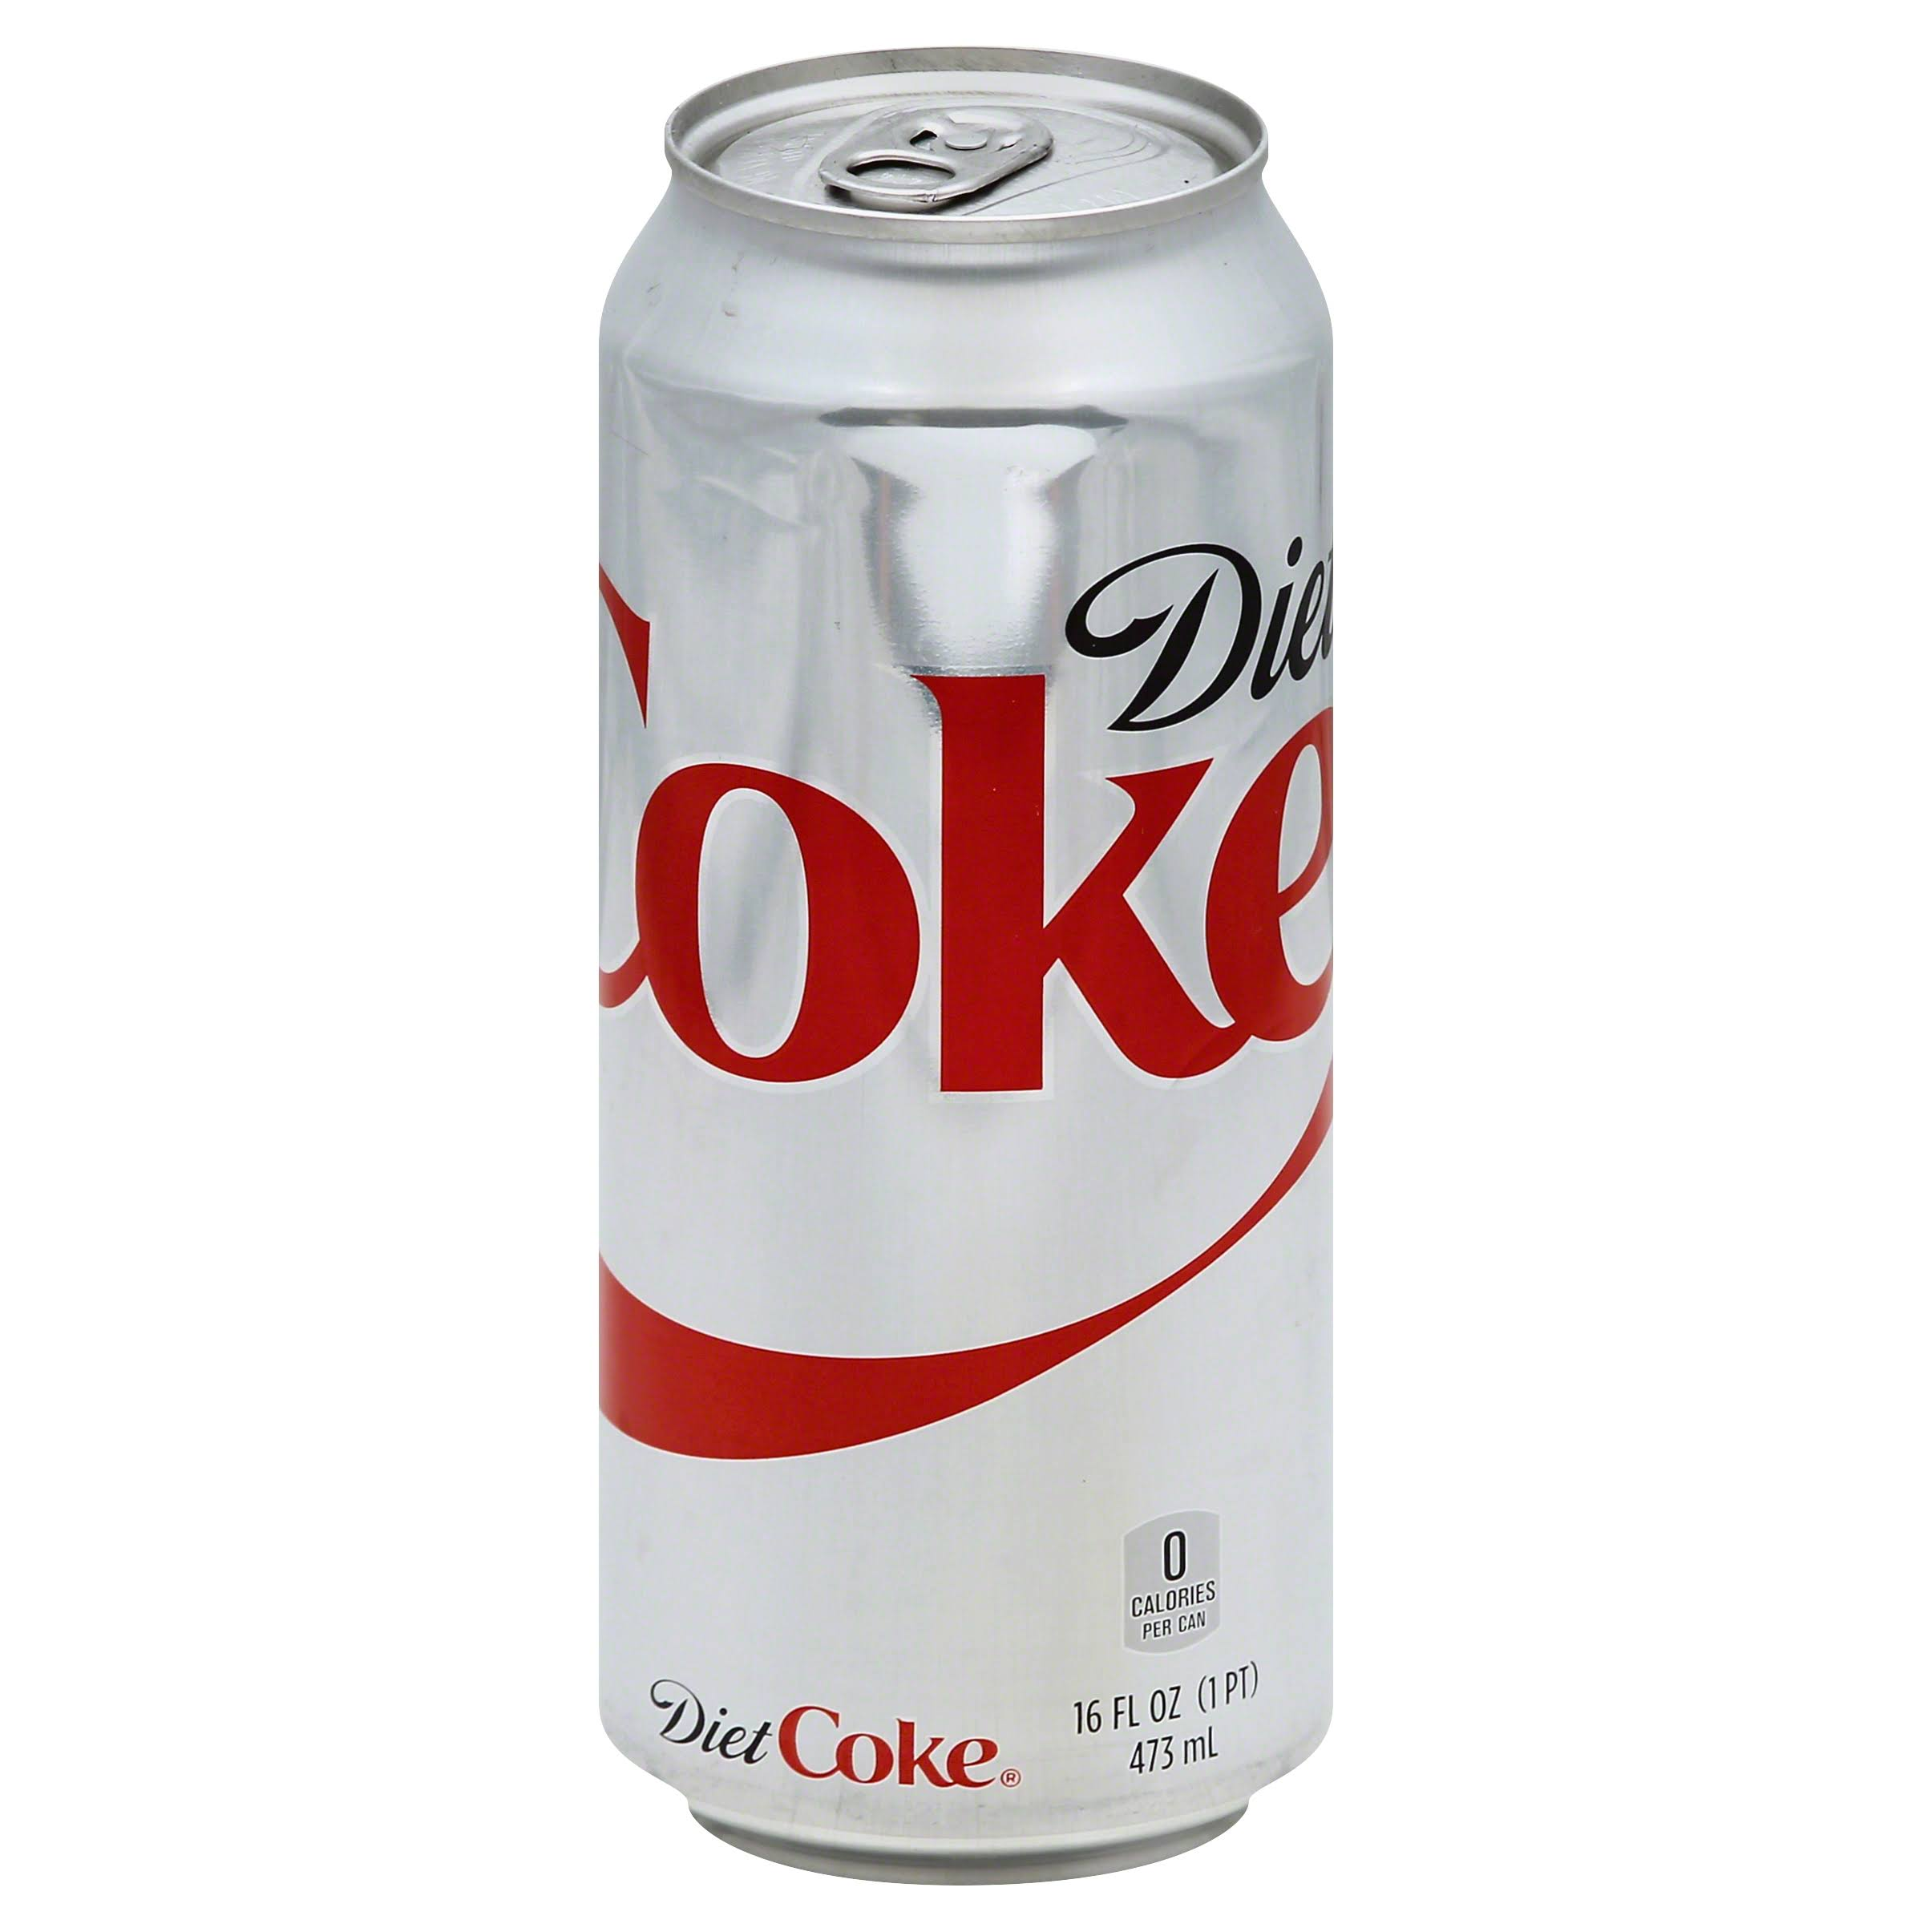 Coca Cola Diet Coke